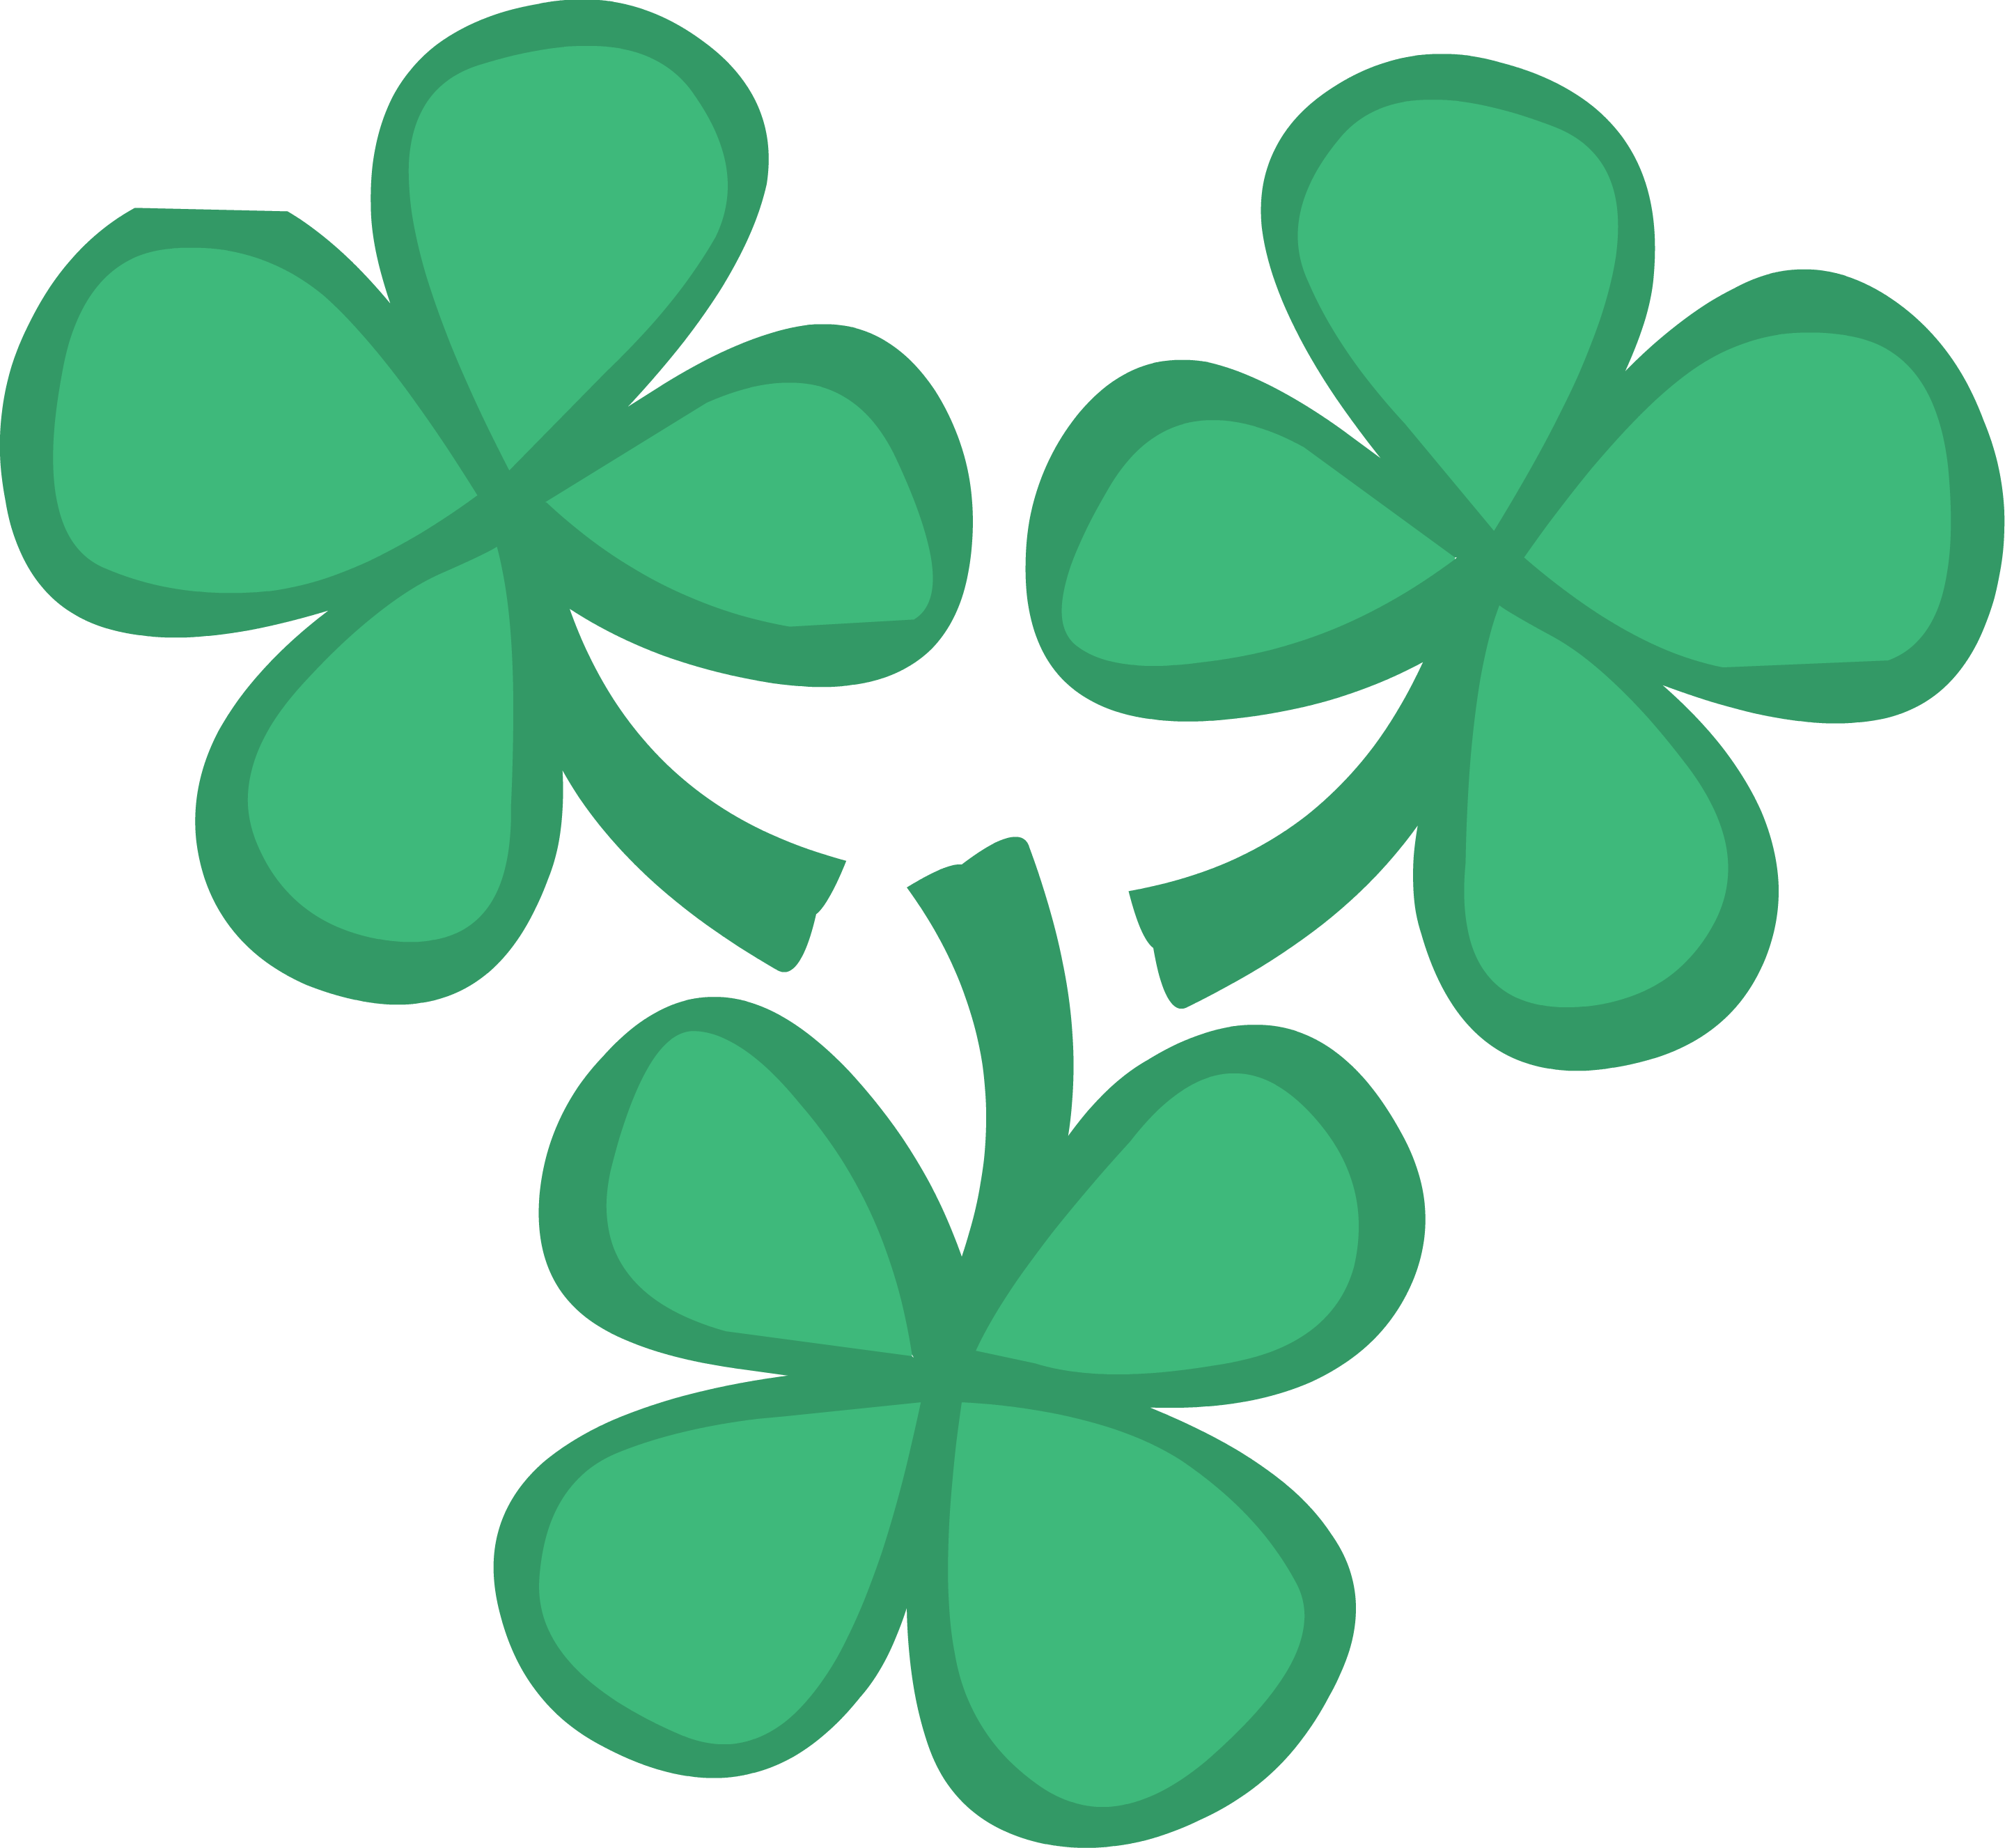 Lucky Clover Png File:ponymaker Clover.png